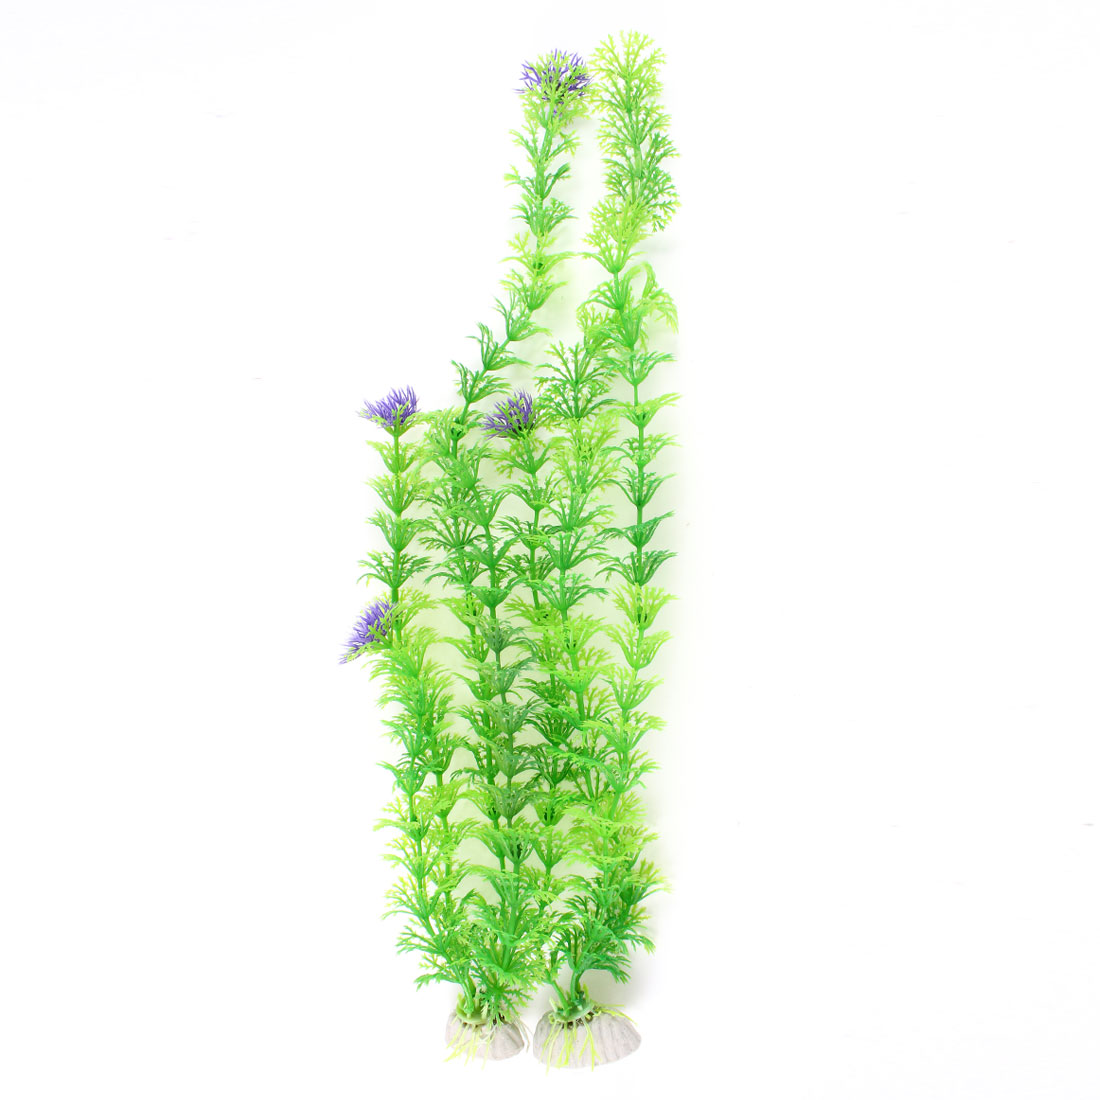 2 Pcs Green Emulational Underwater Grasses Plant Ornament for Fish Tank